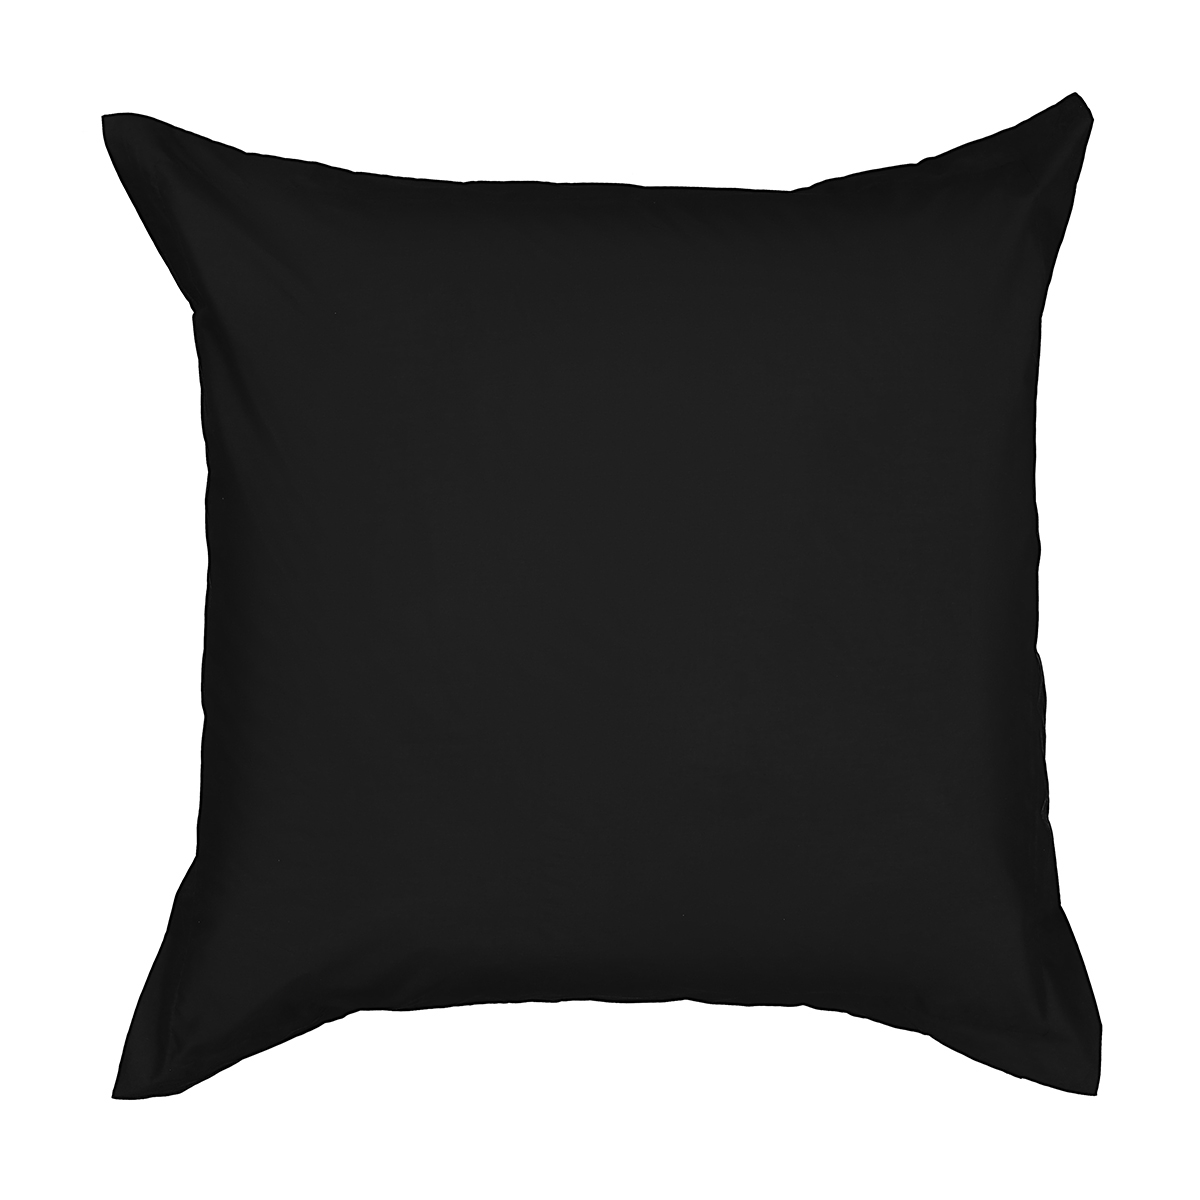 European Pillowcases Online 225 Thread Count European Pillowcase Black Kmart